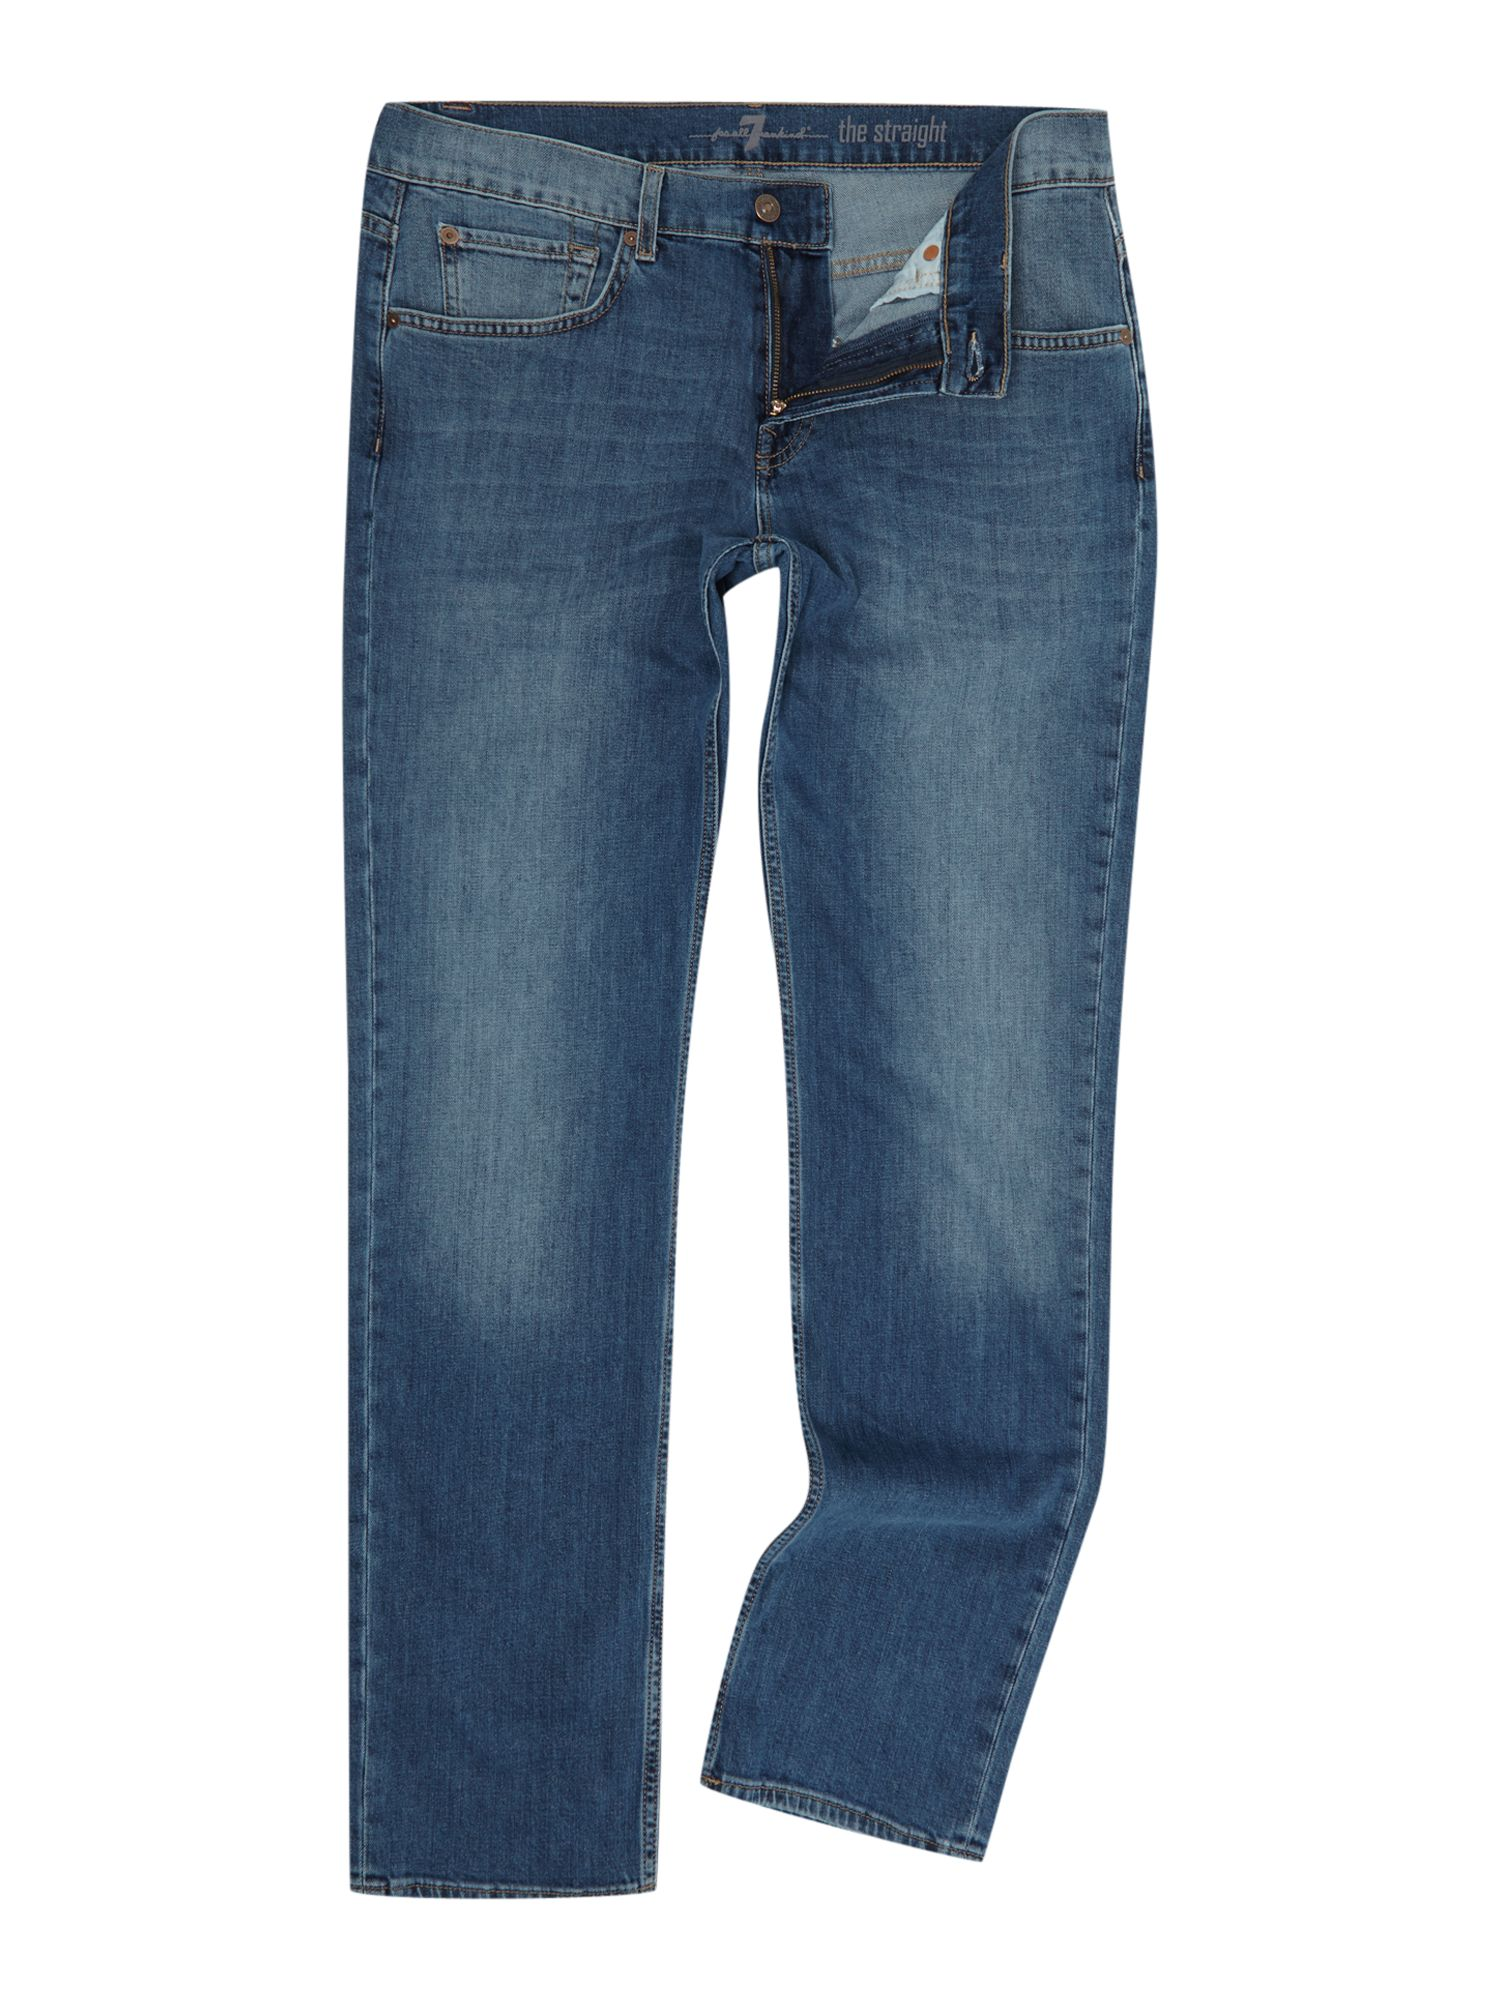 7 For All Mankind Men's 7 For All Mankind The Straight `NY` Medium Wash Stretch Jeans, Denim